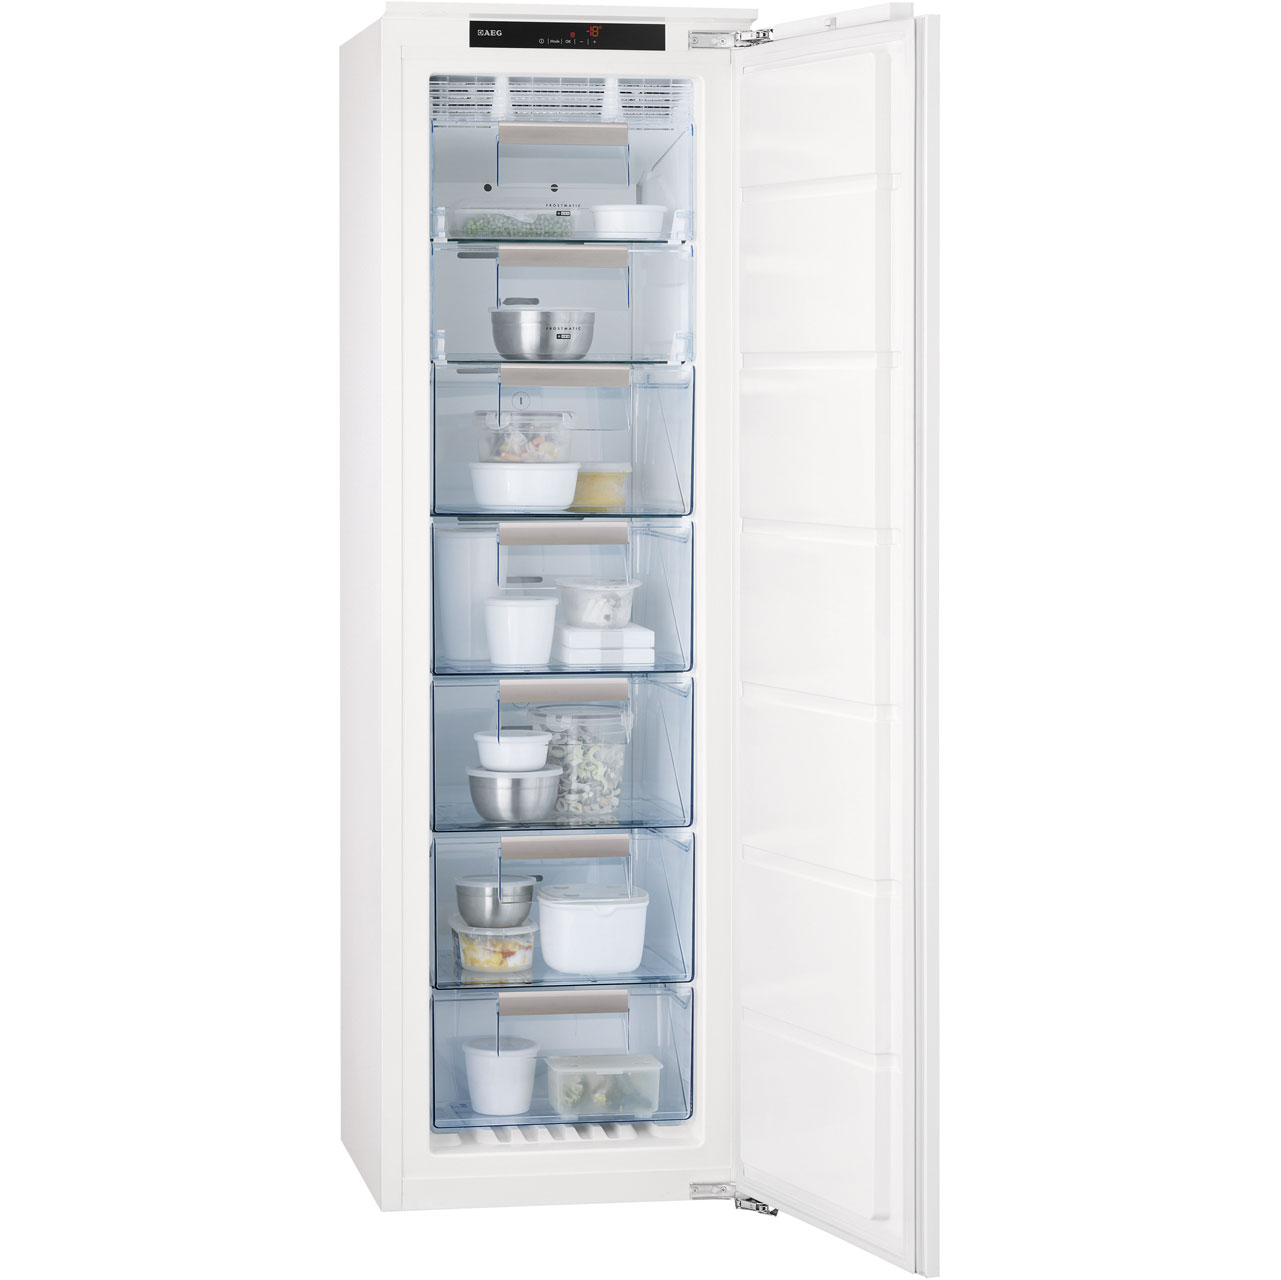 AEG AGN71816C1 Integrated Freezer Frost Free in White